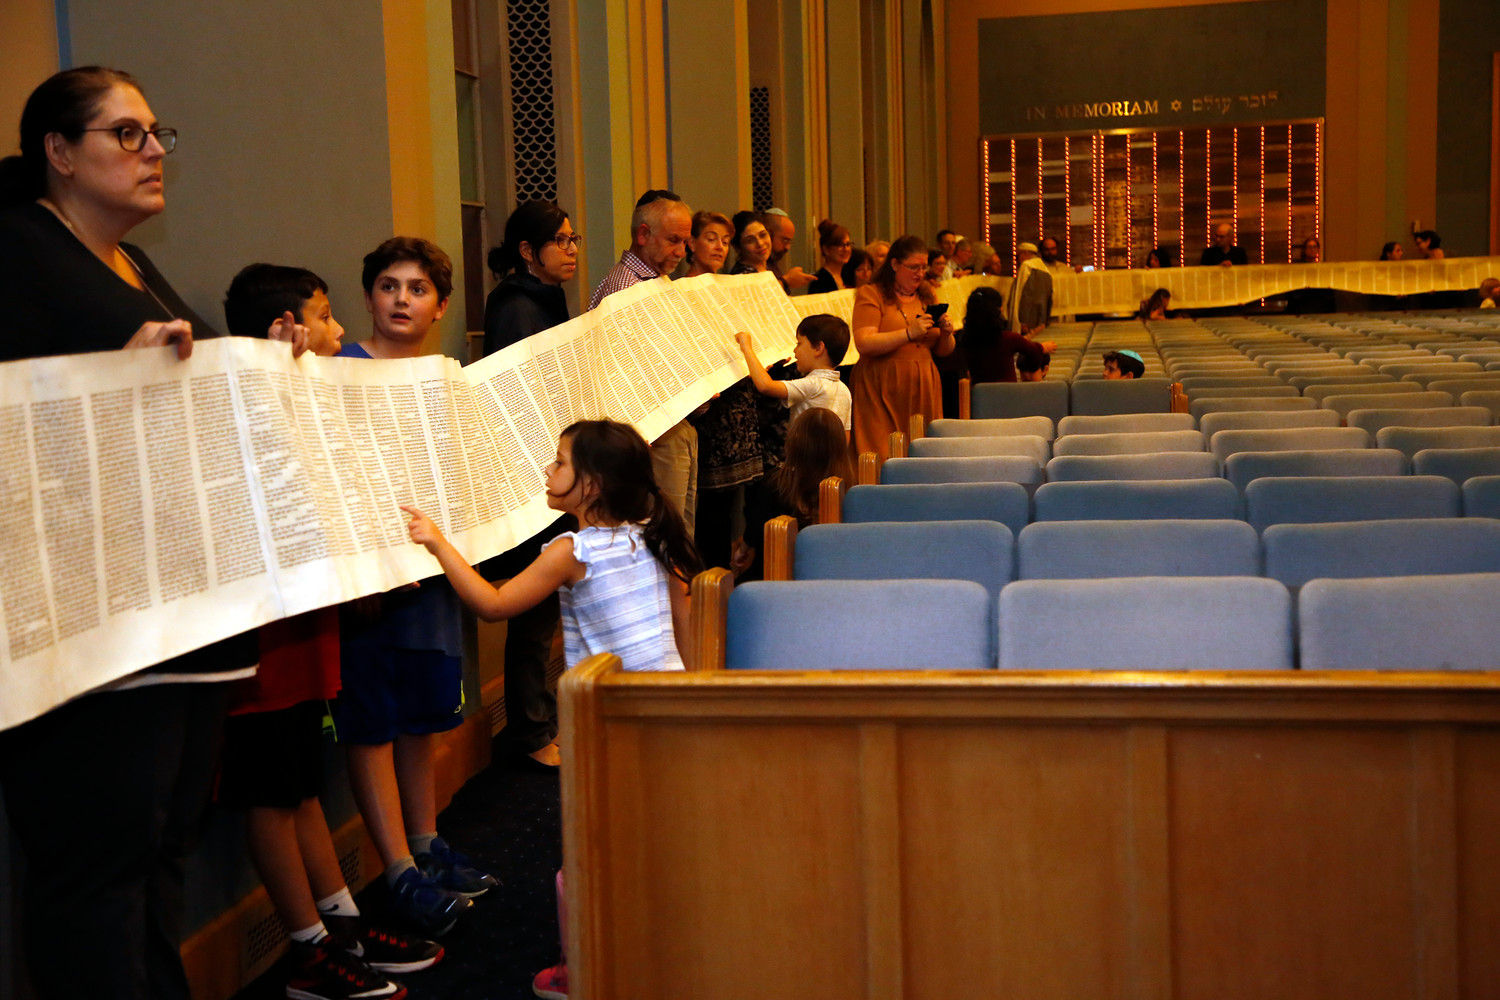 Children got a close-up look at the Torah as it was rolled out during a service at Central Synagogue–Beth Emeth on Oct. 11. The unrolling was in preparation for the celebration of Simchat Torah on Oct. 12, a Jewish holiday where the year-long Torah-reading cycle is completed and then immediately begun anew.